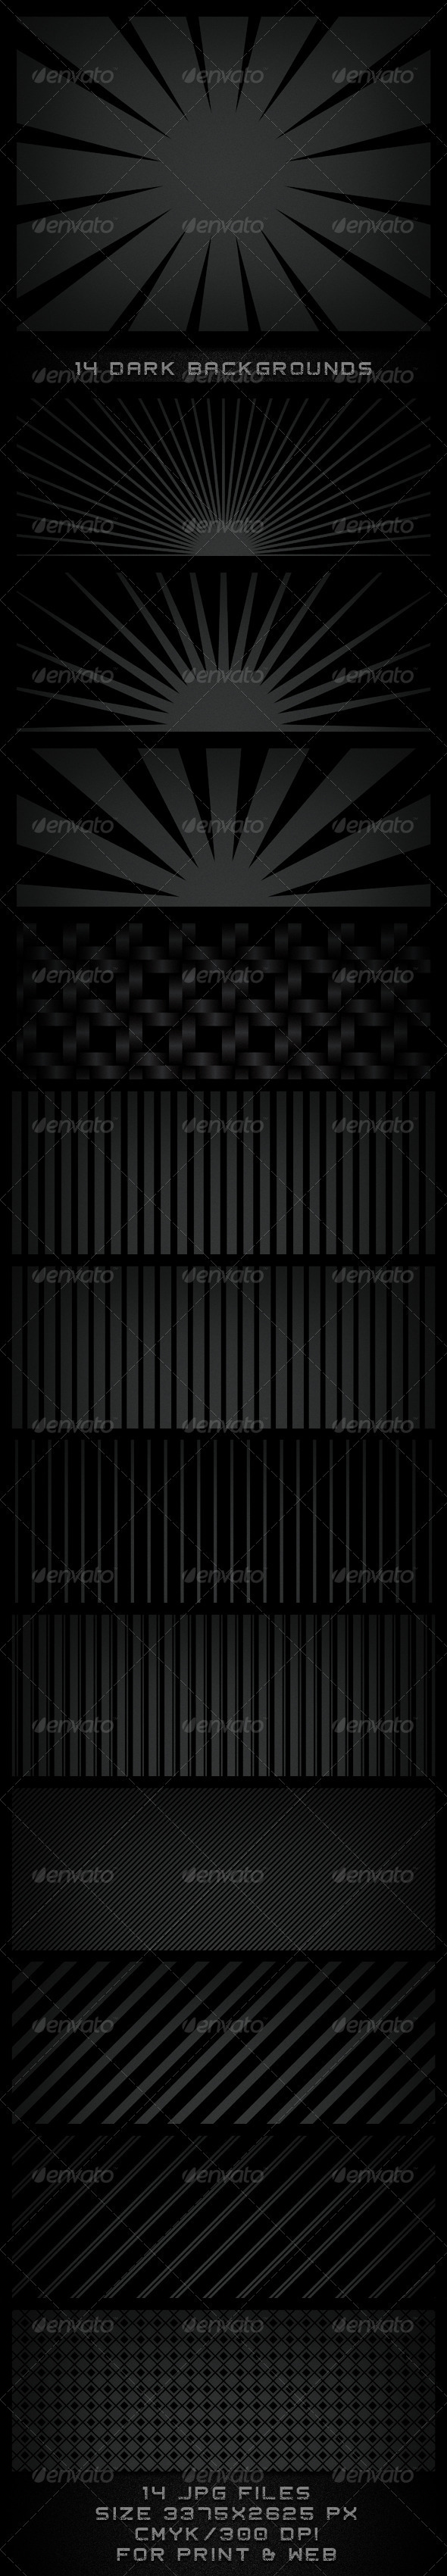 Dark Backgrounds - Backgrounds Graphics